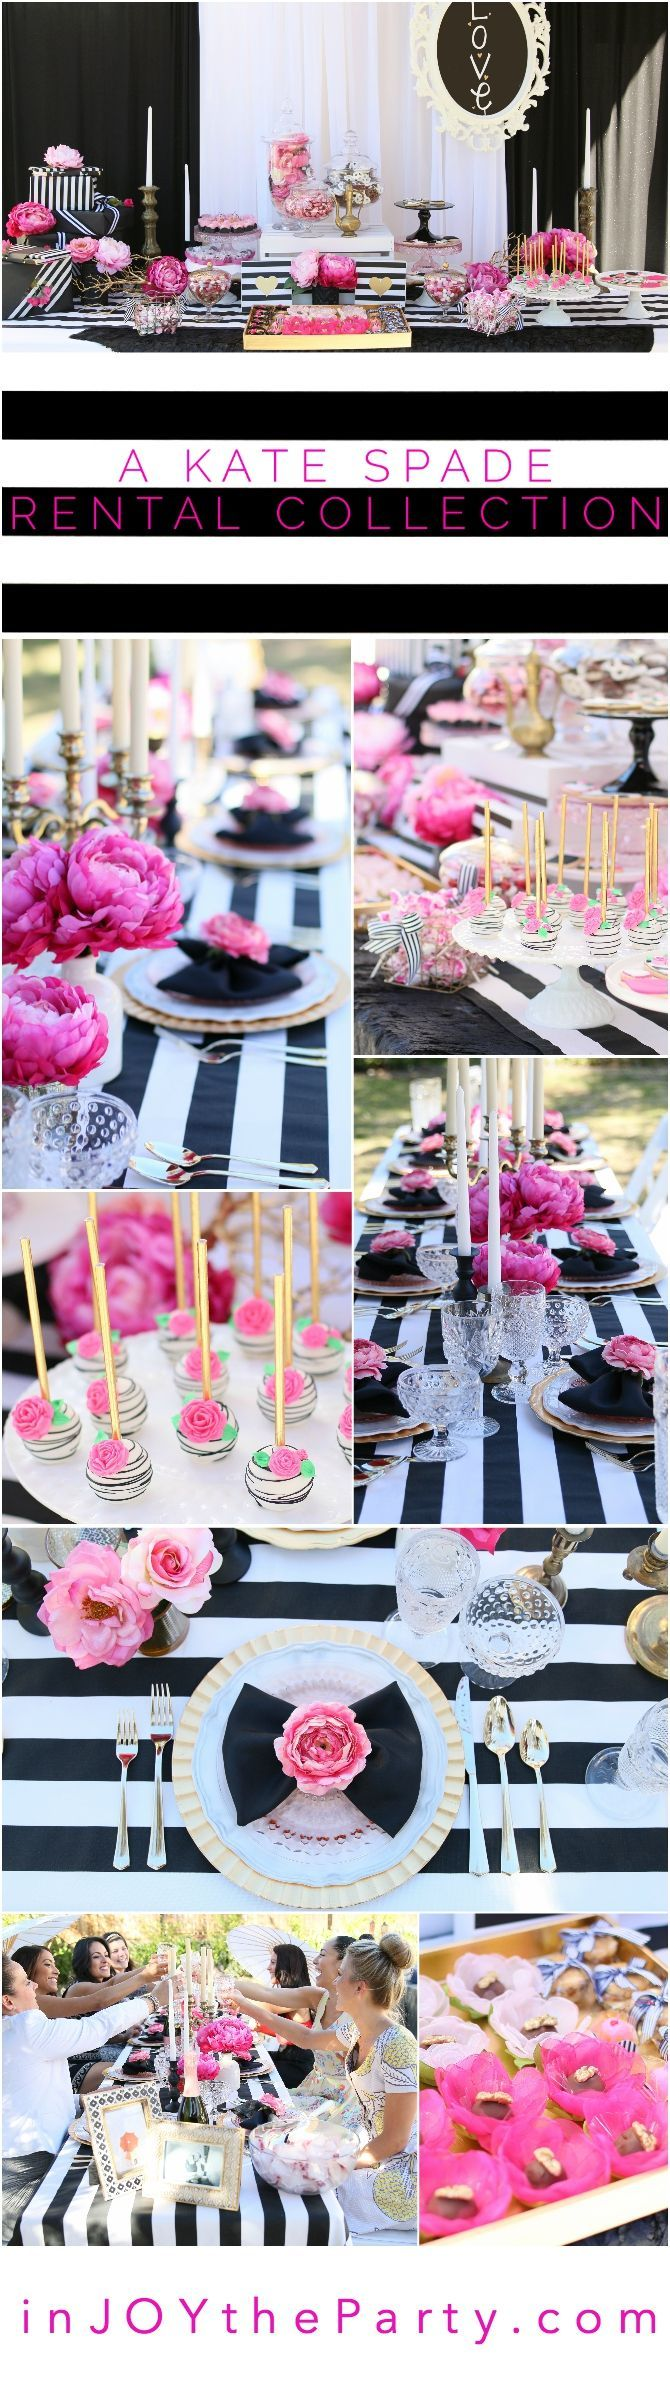 "We rent it, you design it! You'll want to find a reason to celebrate with our ""Pink Please"" Kate Spade Rental Collection! Everything here is prepackaged and ready to rent. Yup, even the flowers! Black & White Stripes + Pink Peonies + gold accents = LOVE! Perfect for a bridal shower, baby shower, or birthday party for your favorite fashionista. @inJOYtheParty"